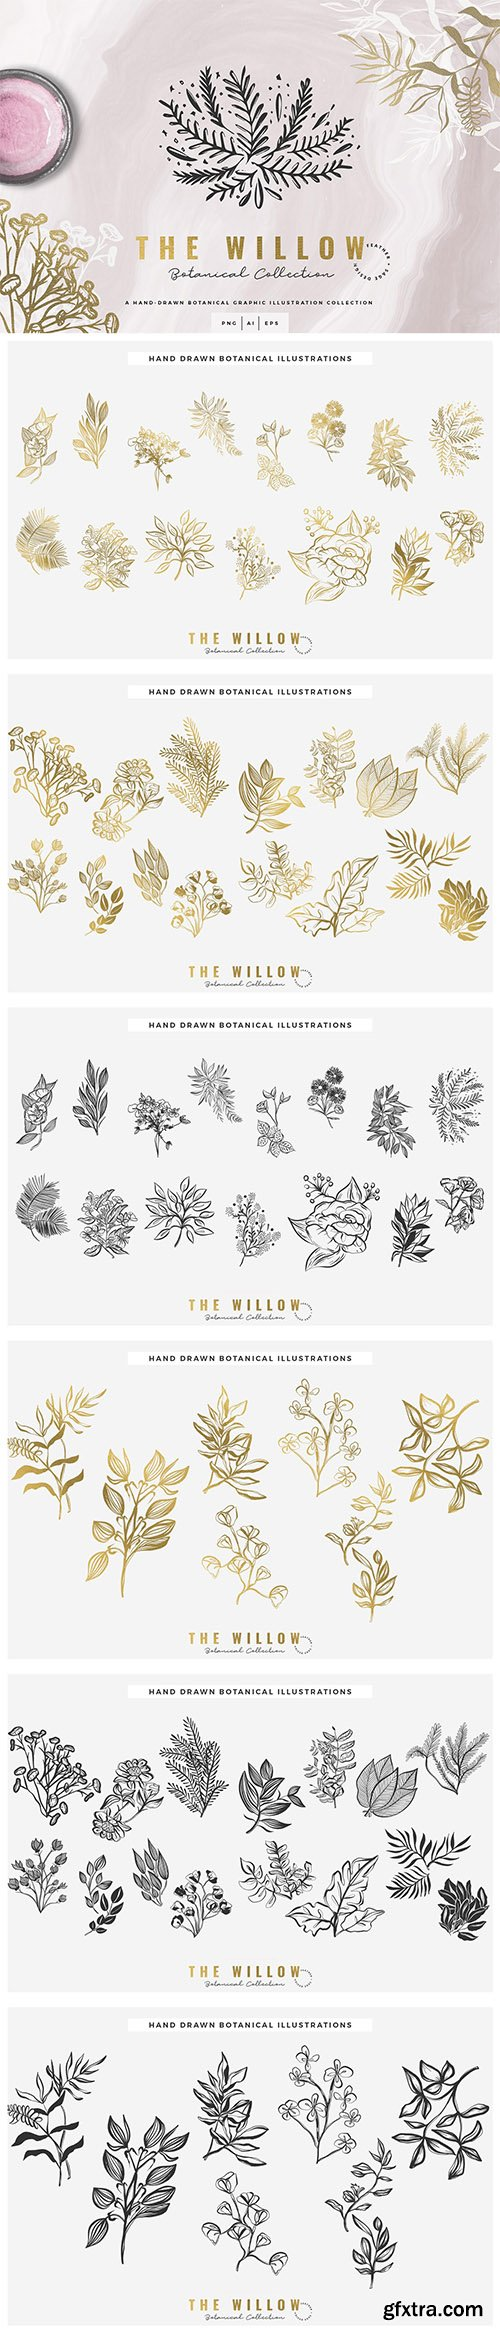 The Willow Graphic Collection